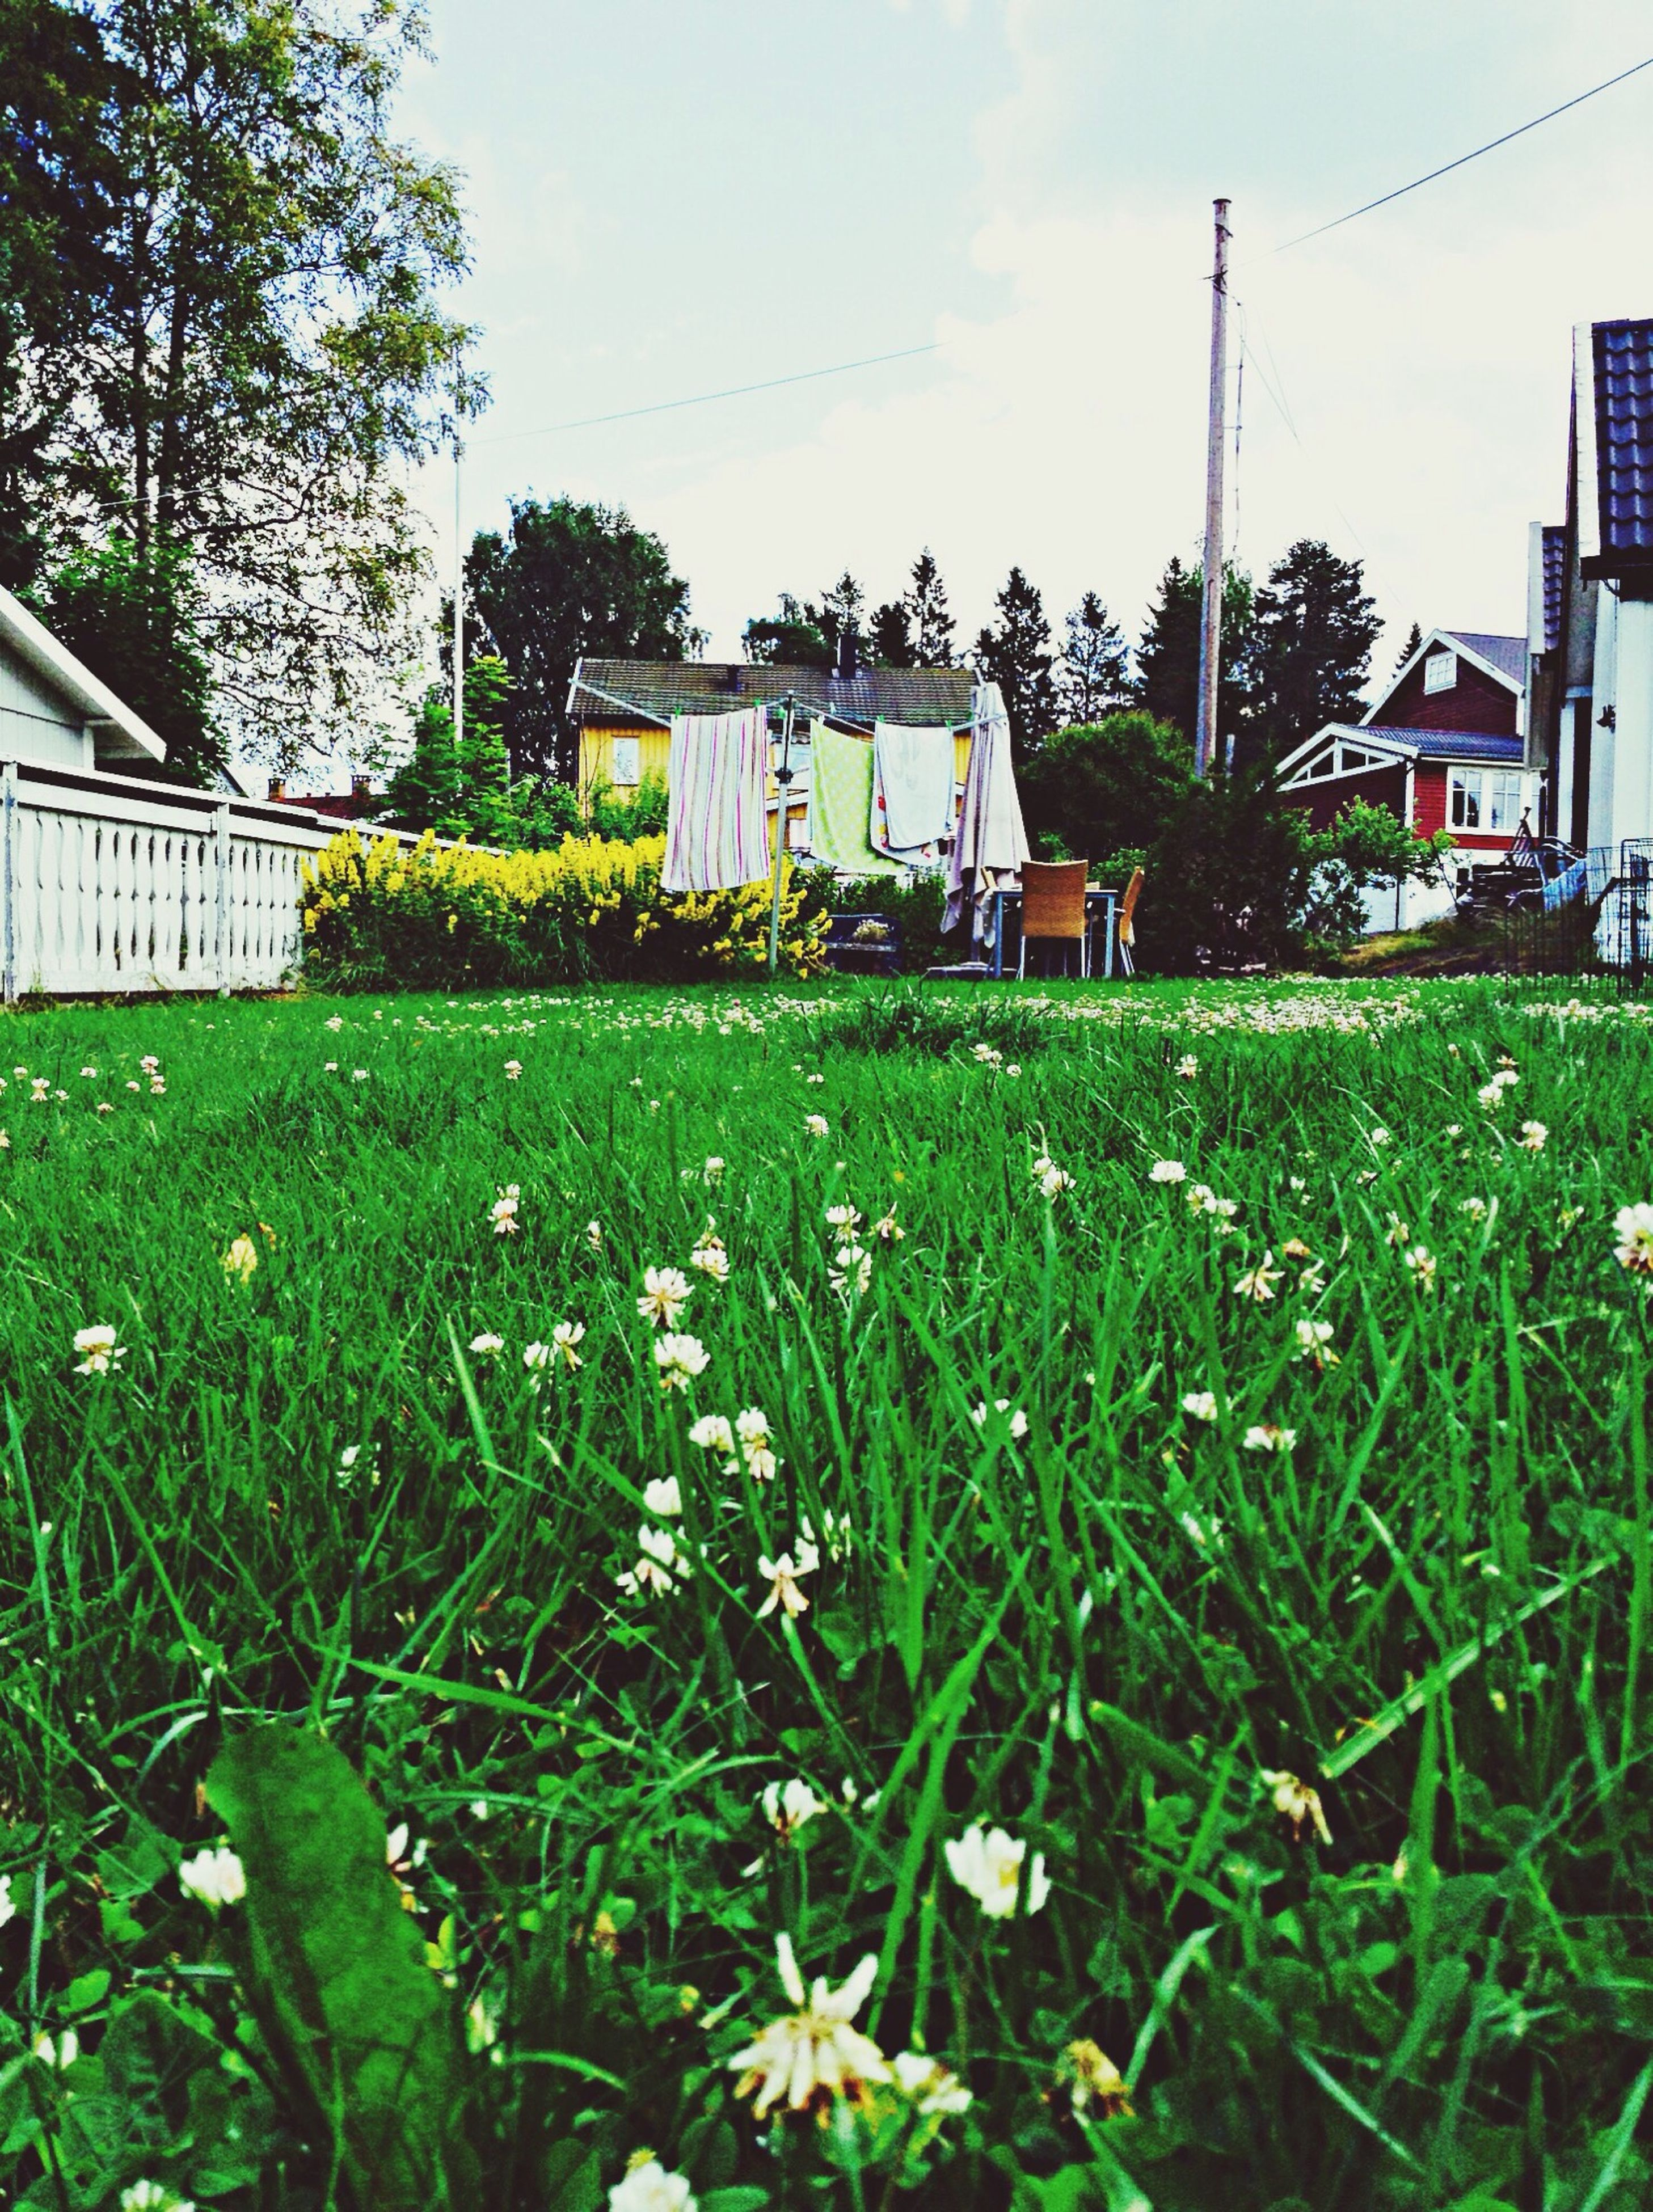 grass, building exterior, architecture, built structure, growth, field, plant, green color, sky, house, flower, nature, grassy, freshness, day, lawn, outdoors, no people, front or back yard, growing